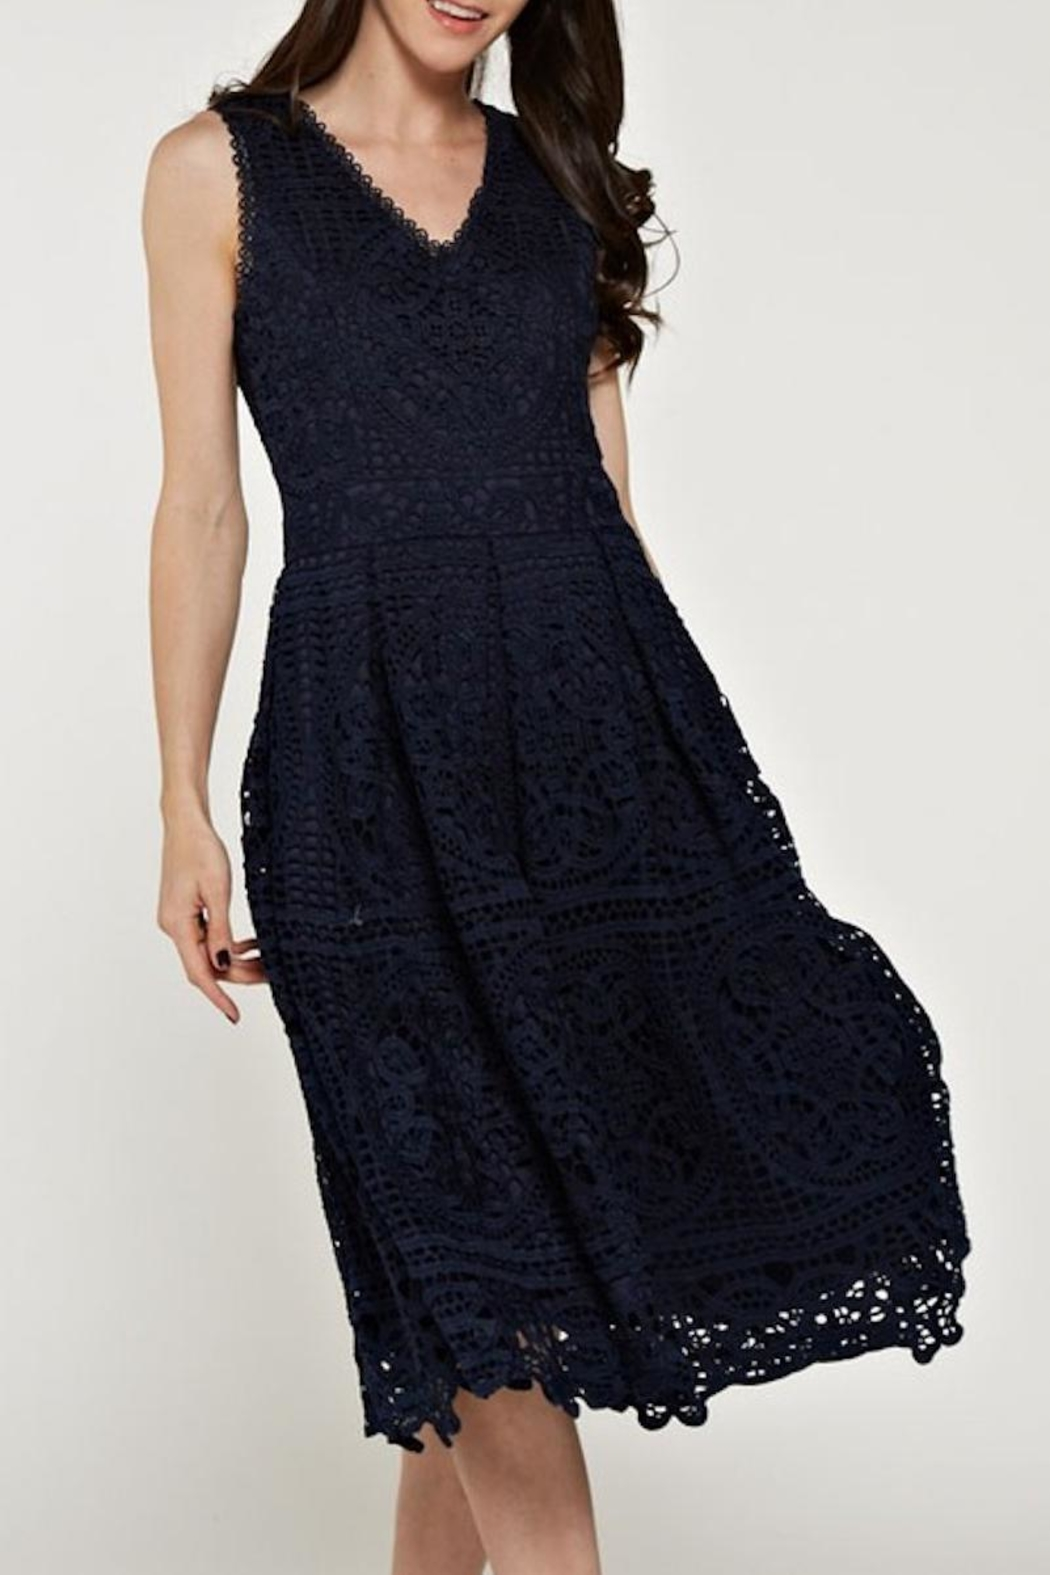 The Clothing Co Crochet/lace Navy Dress - Main Image